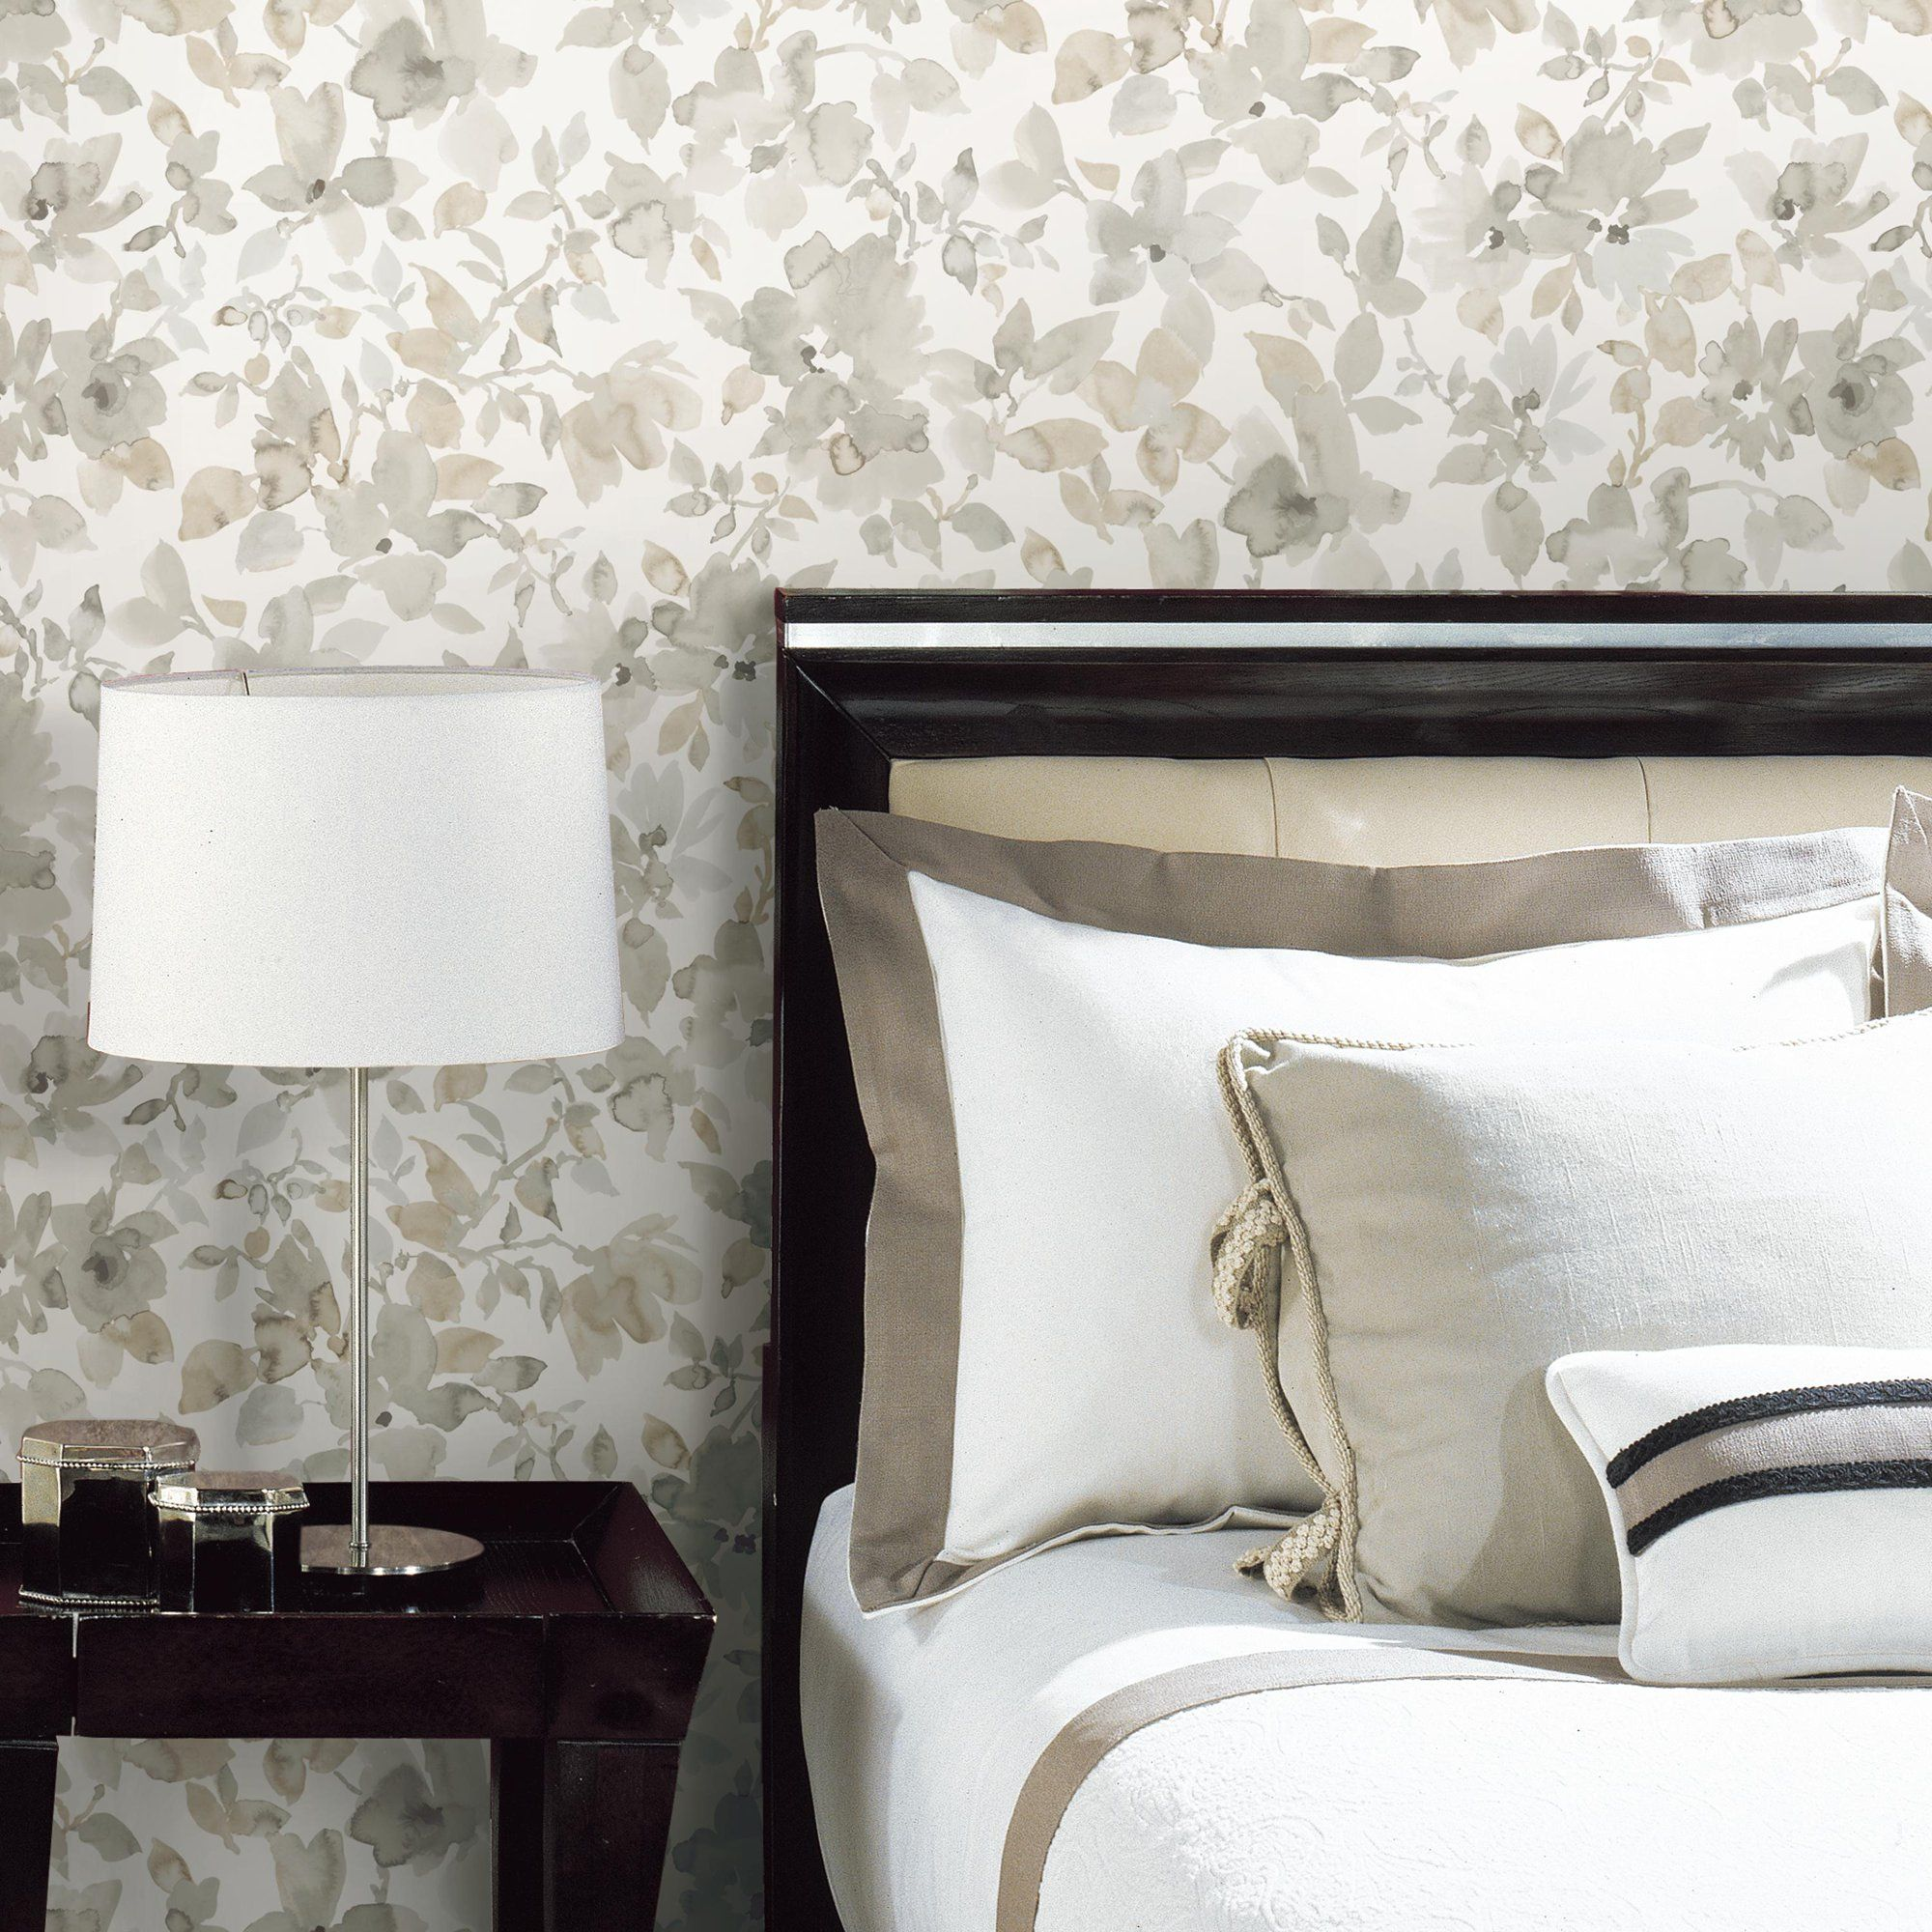 Roommates Neutral Watercolor Floral Peel And Stick Wallpaper Walmart Com Peel And Stick Wallpaper Roommate Decor Peelable Wallpaper